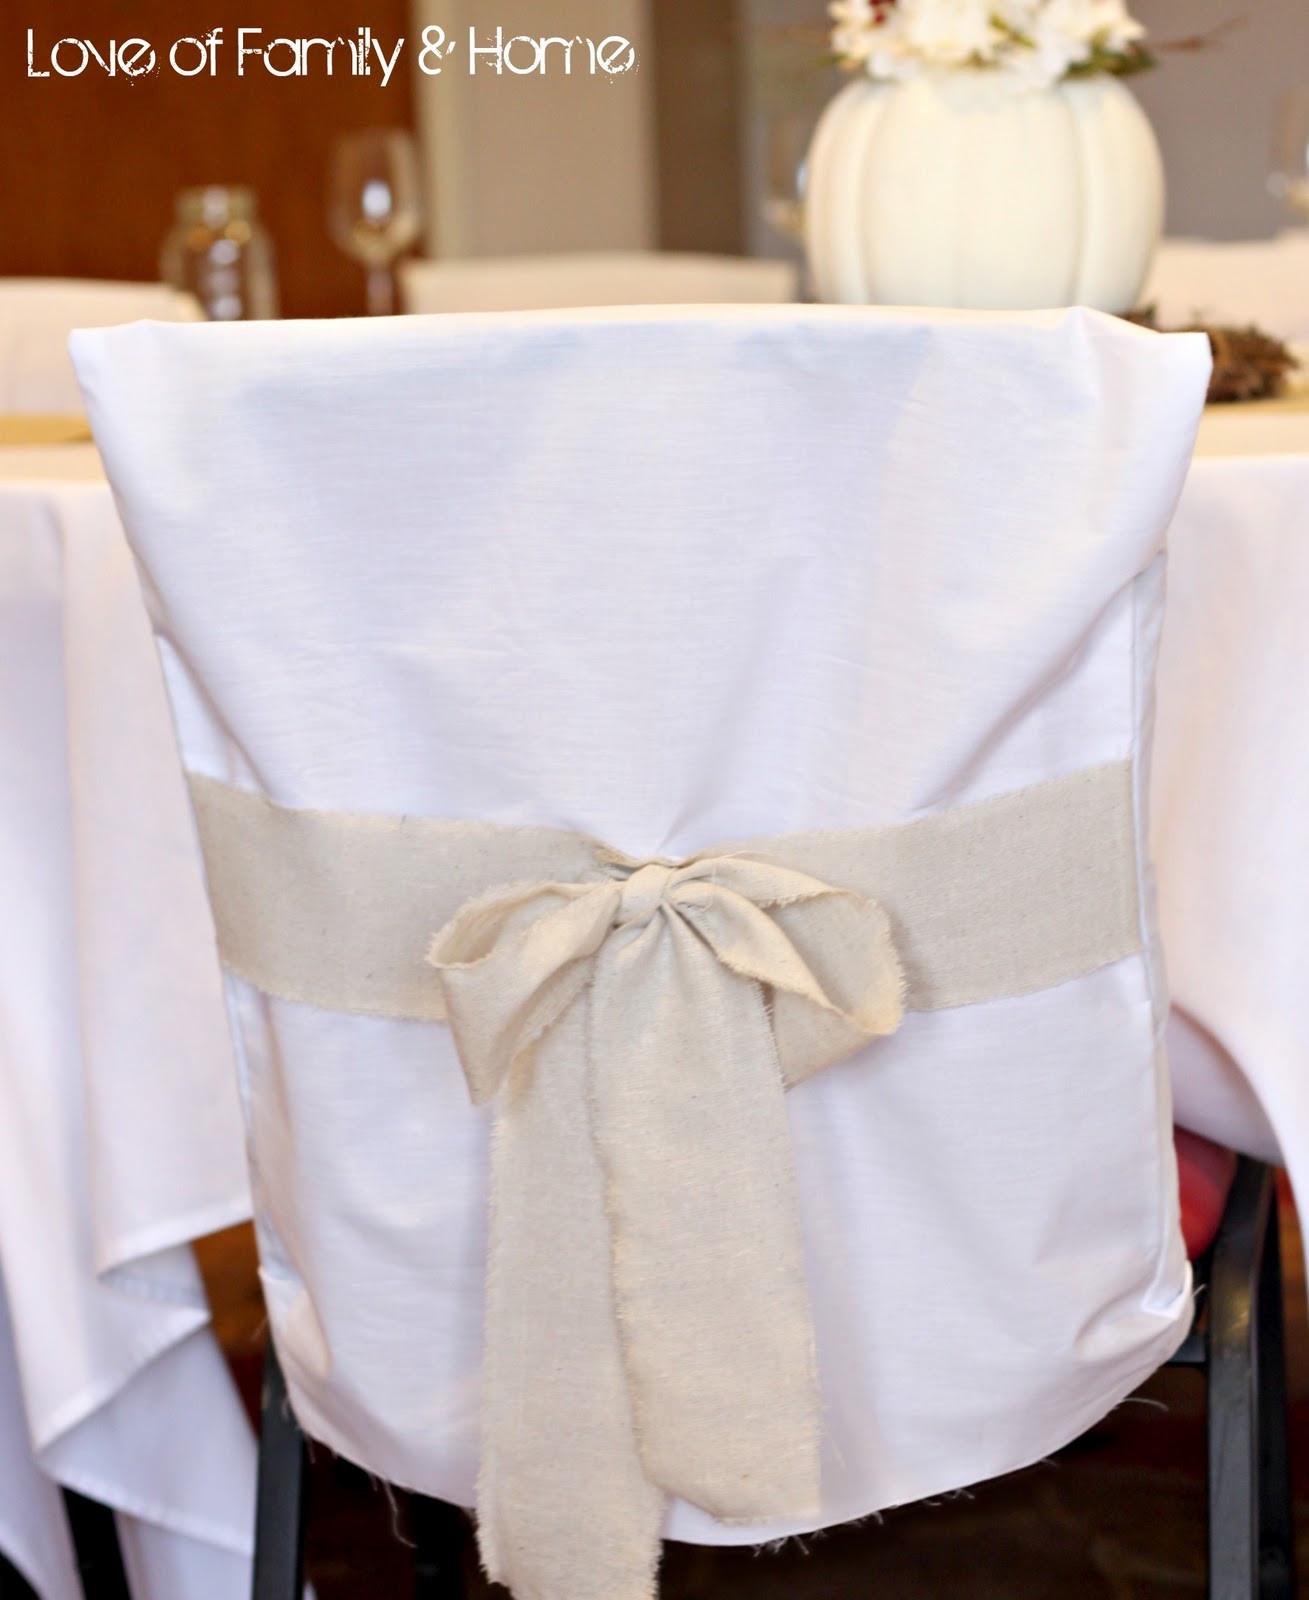 Best ideas about DIY Wedding Chair Covers . Save or Pin DIY Rustic Chic Fall Wedding Reveal Love of Family Now.